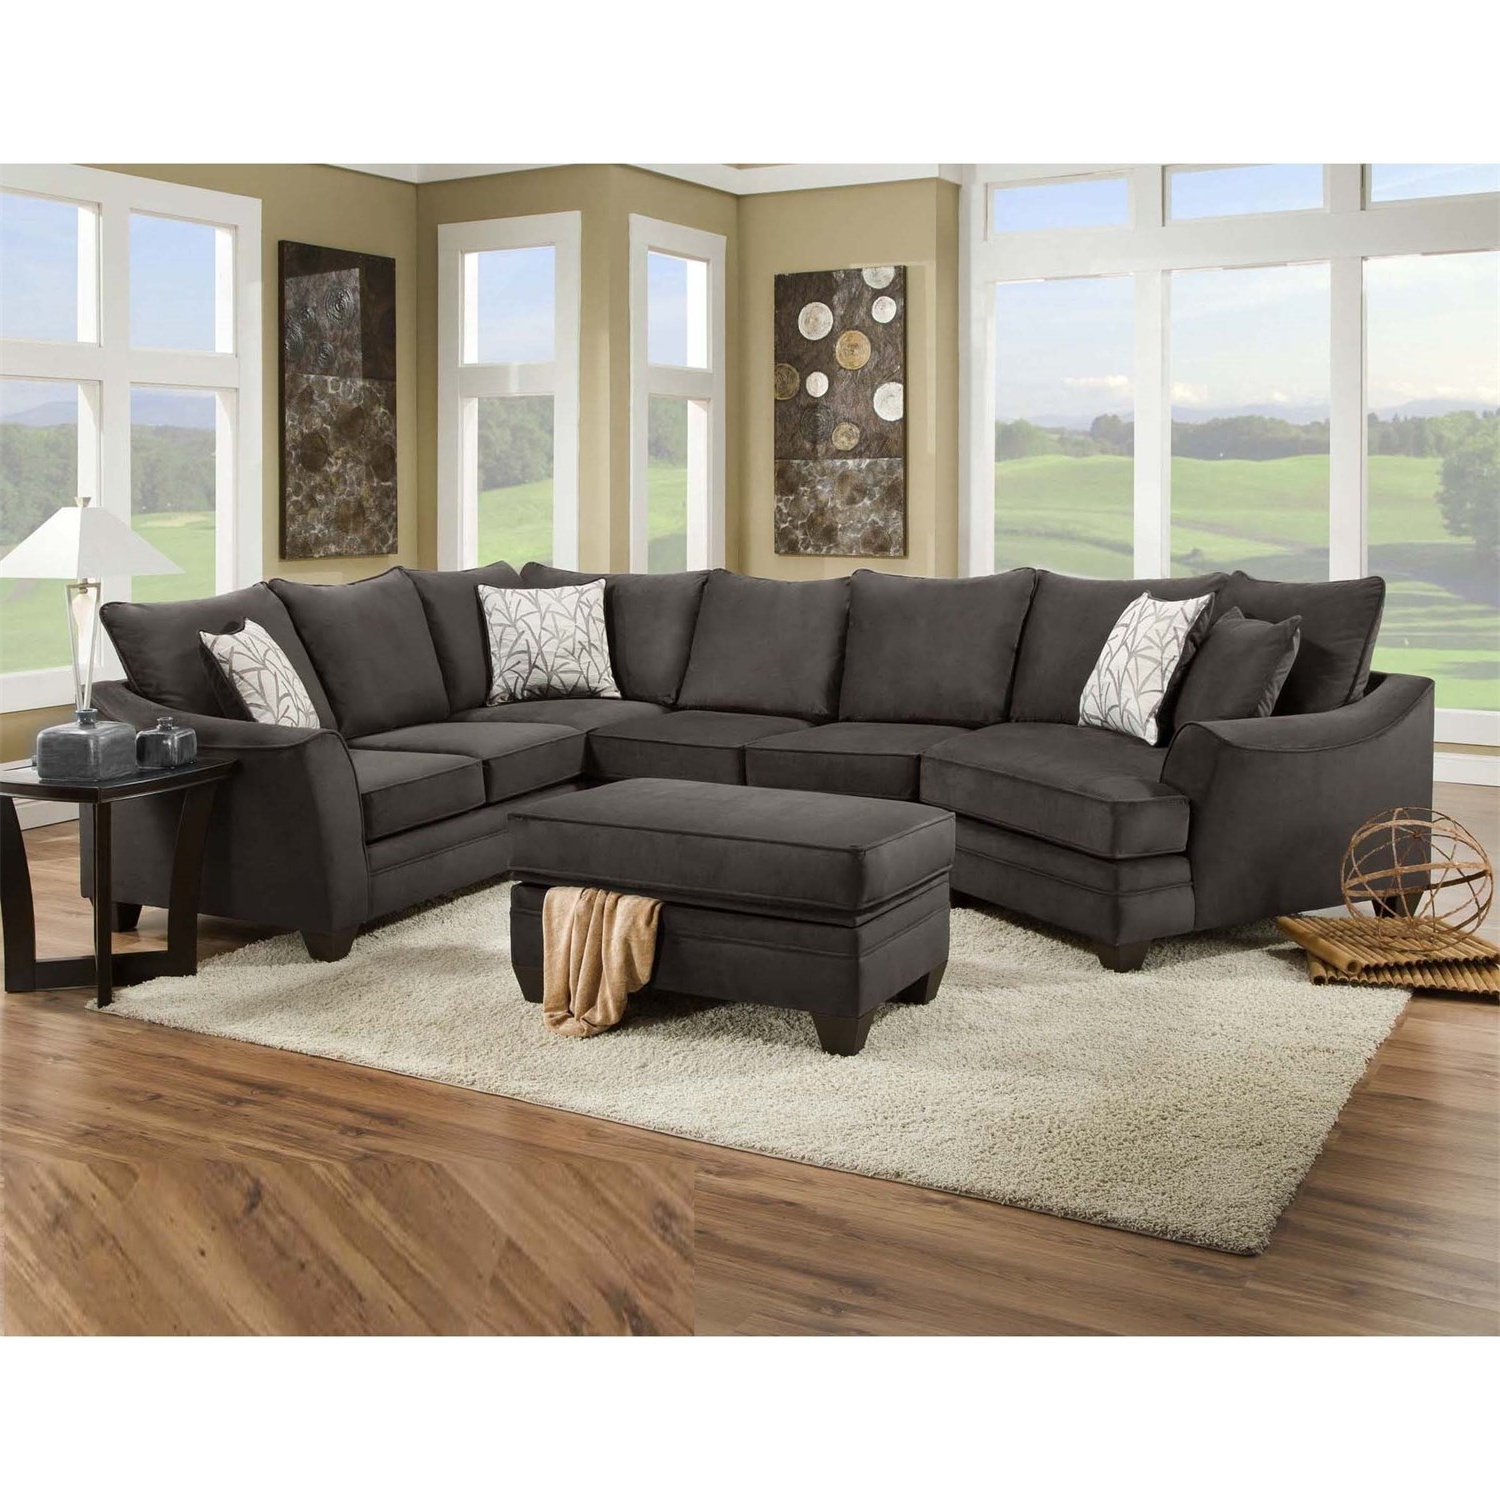 Homeclick Throughout Home Furniture Sectional Sofas (View 3 of 20)